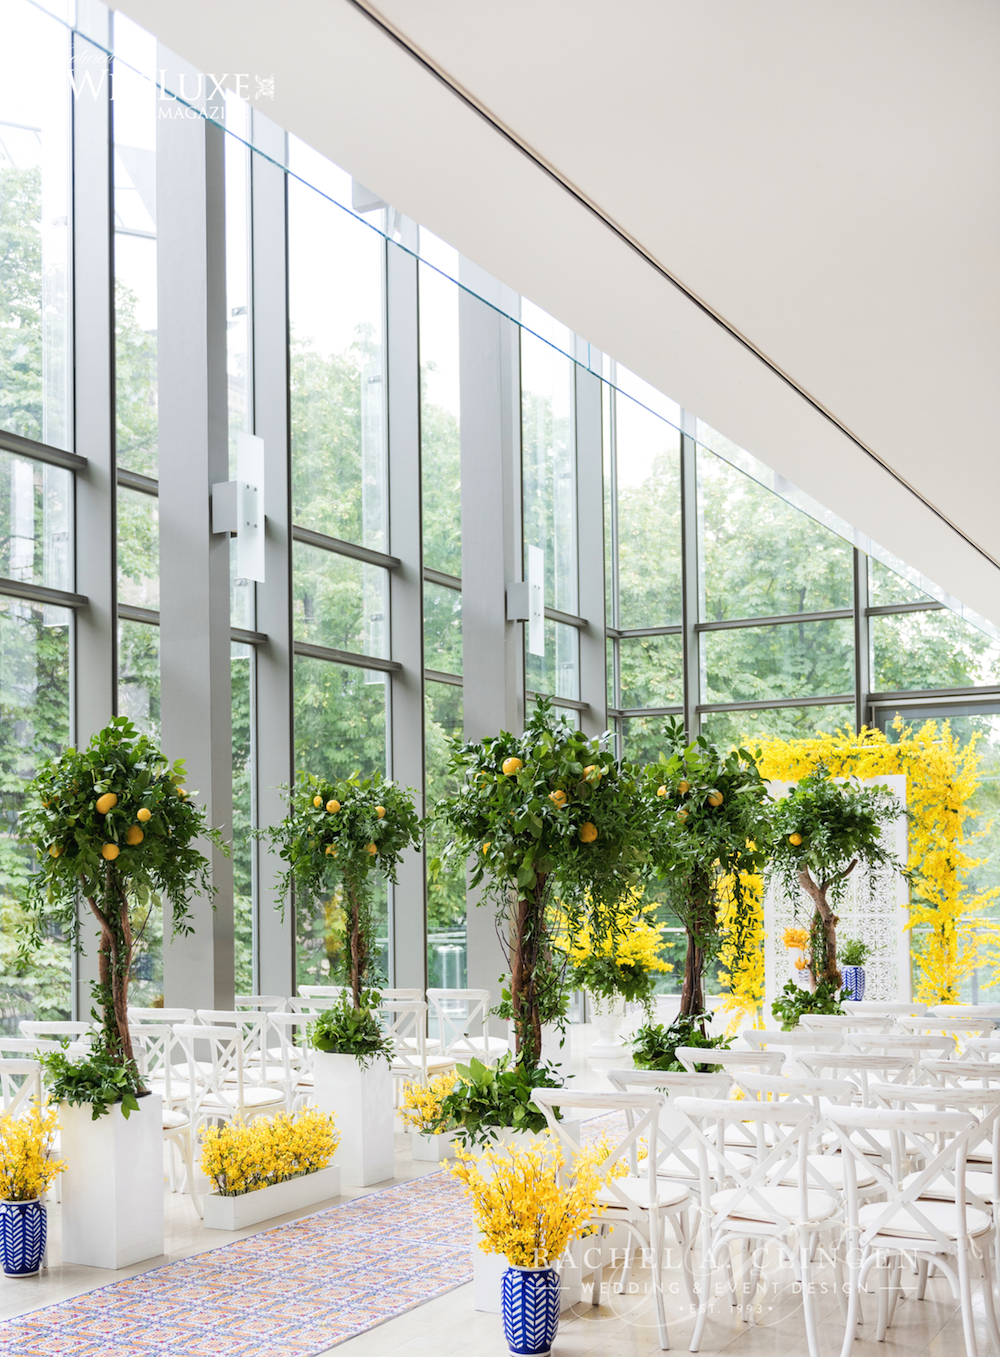 Events Co Producer Stylist Decor And Floral Rachel A Clingen Wedding Event Design Venue The Royal Conservatory Of Music